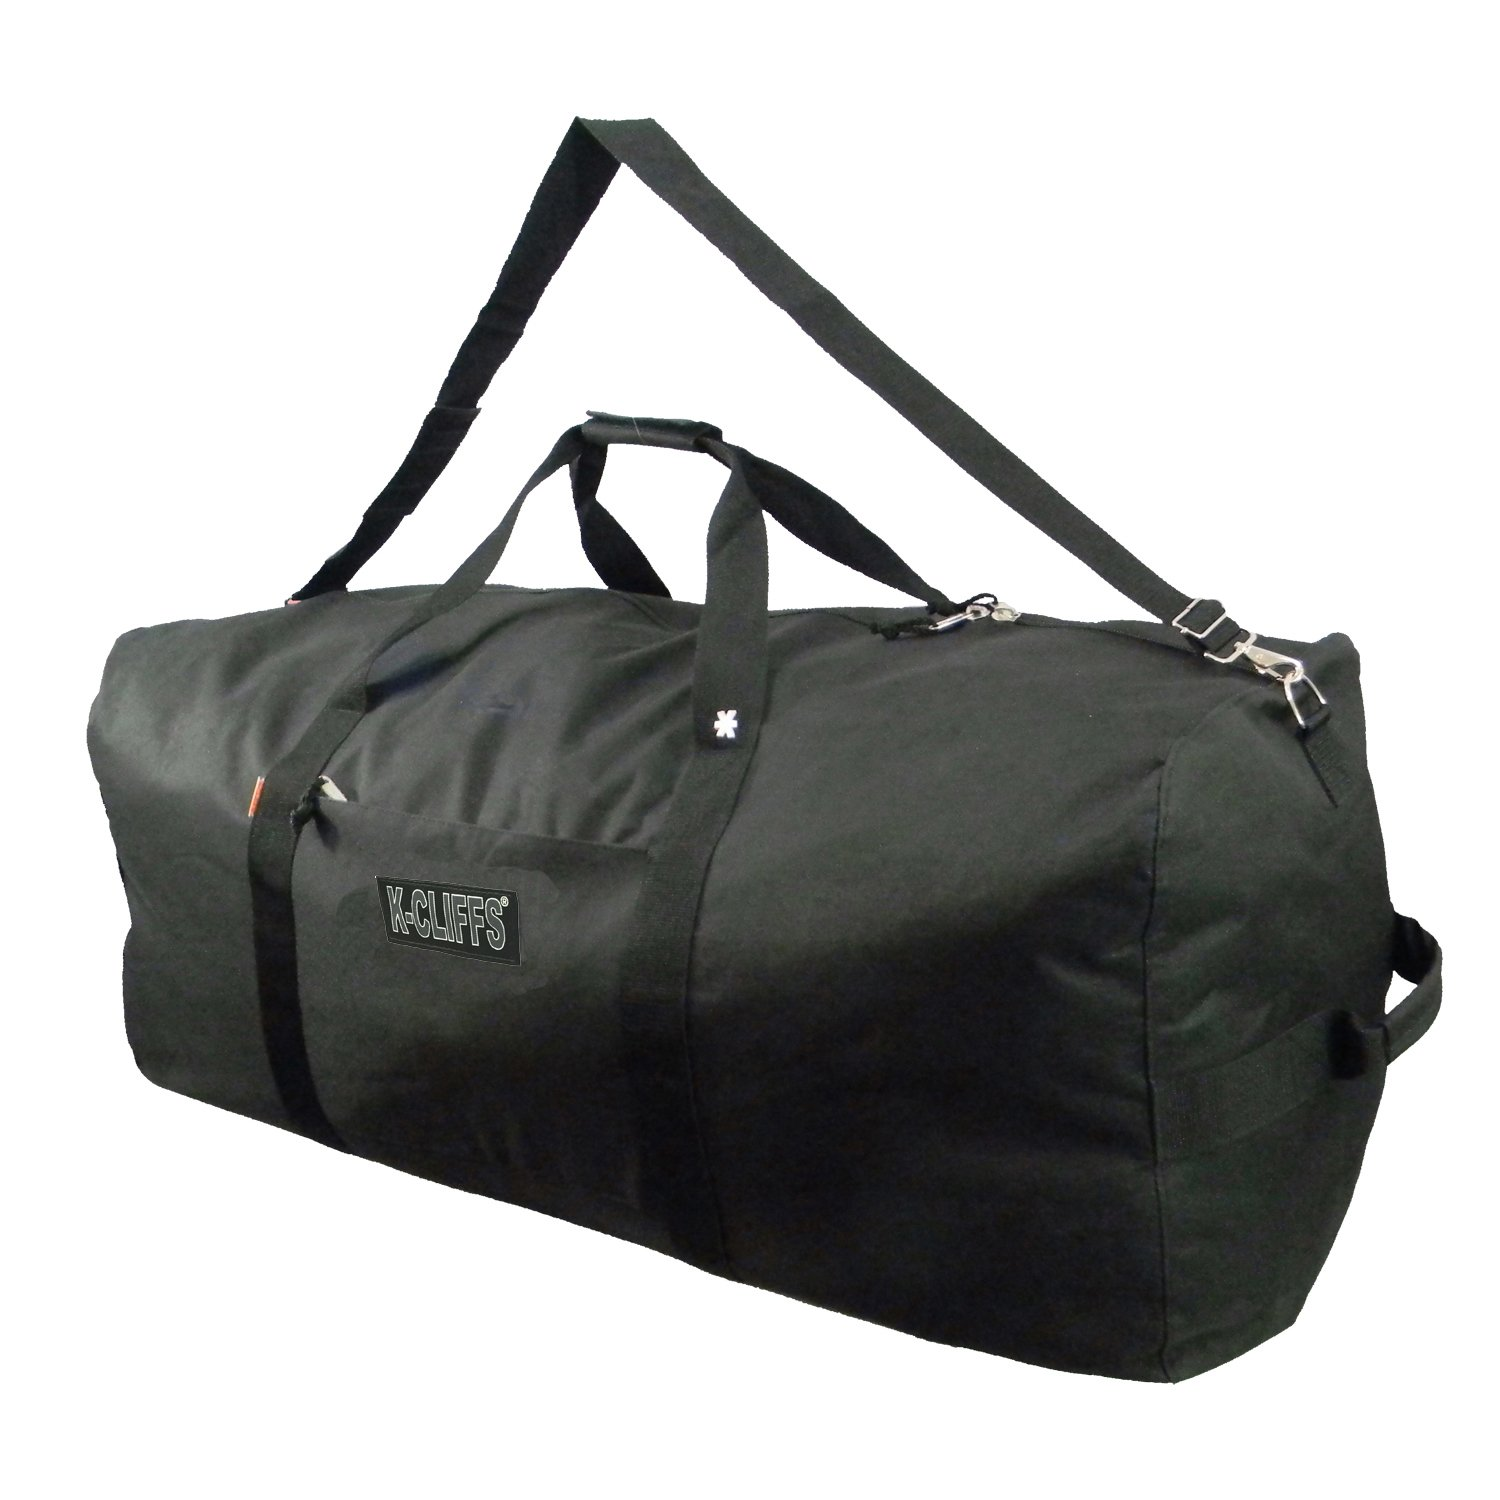 Amazon.com: Heavy Duty Cargo Duffel Large Sport Gear Equipment ...